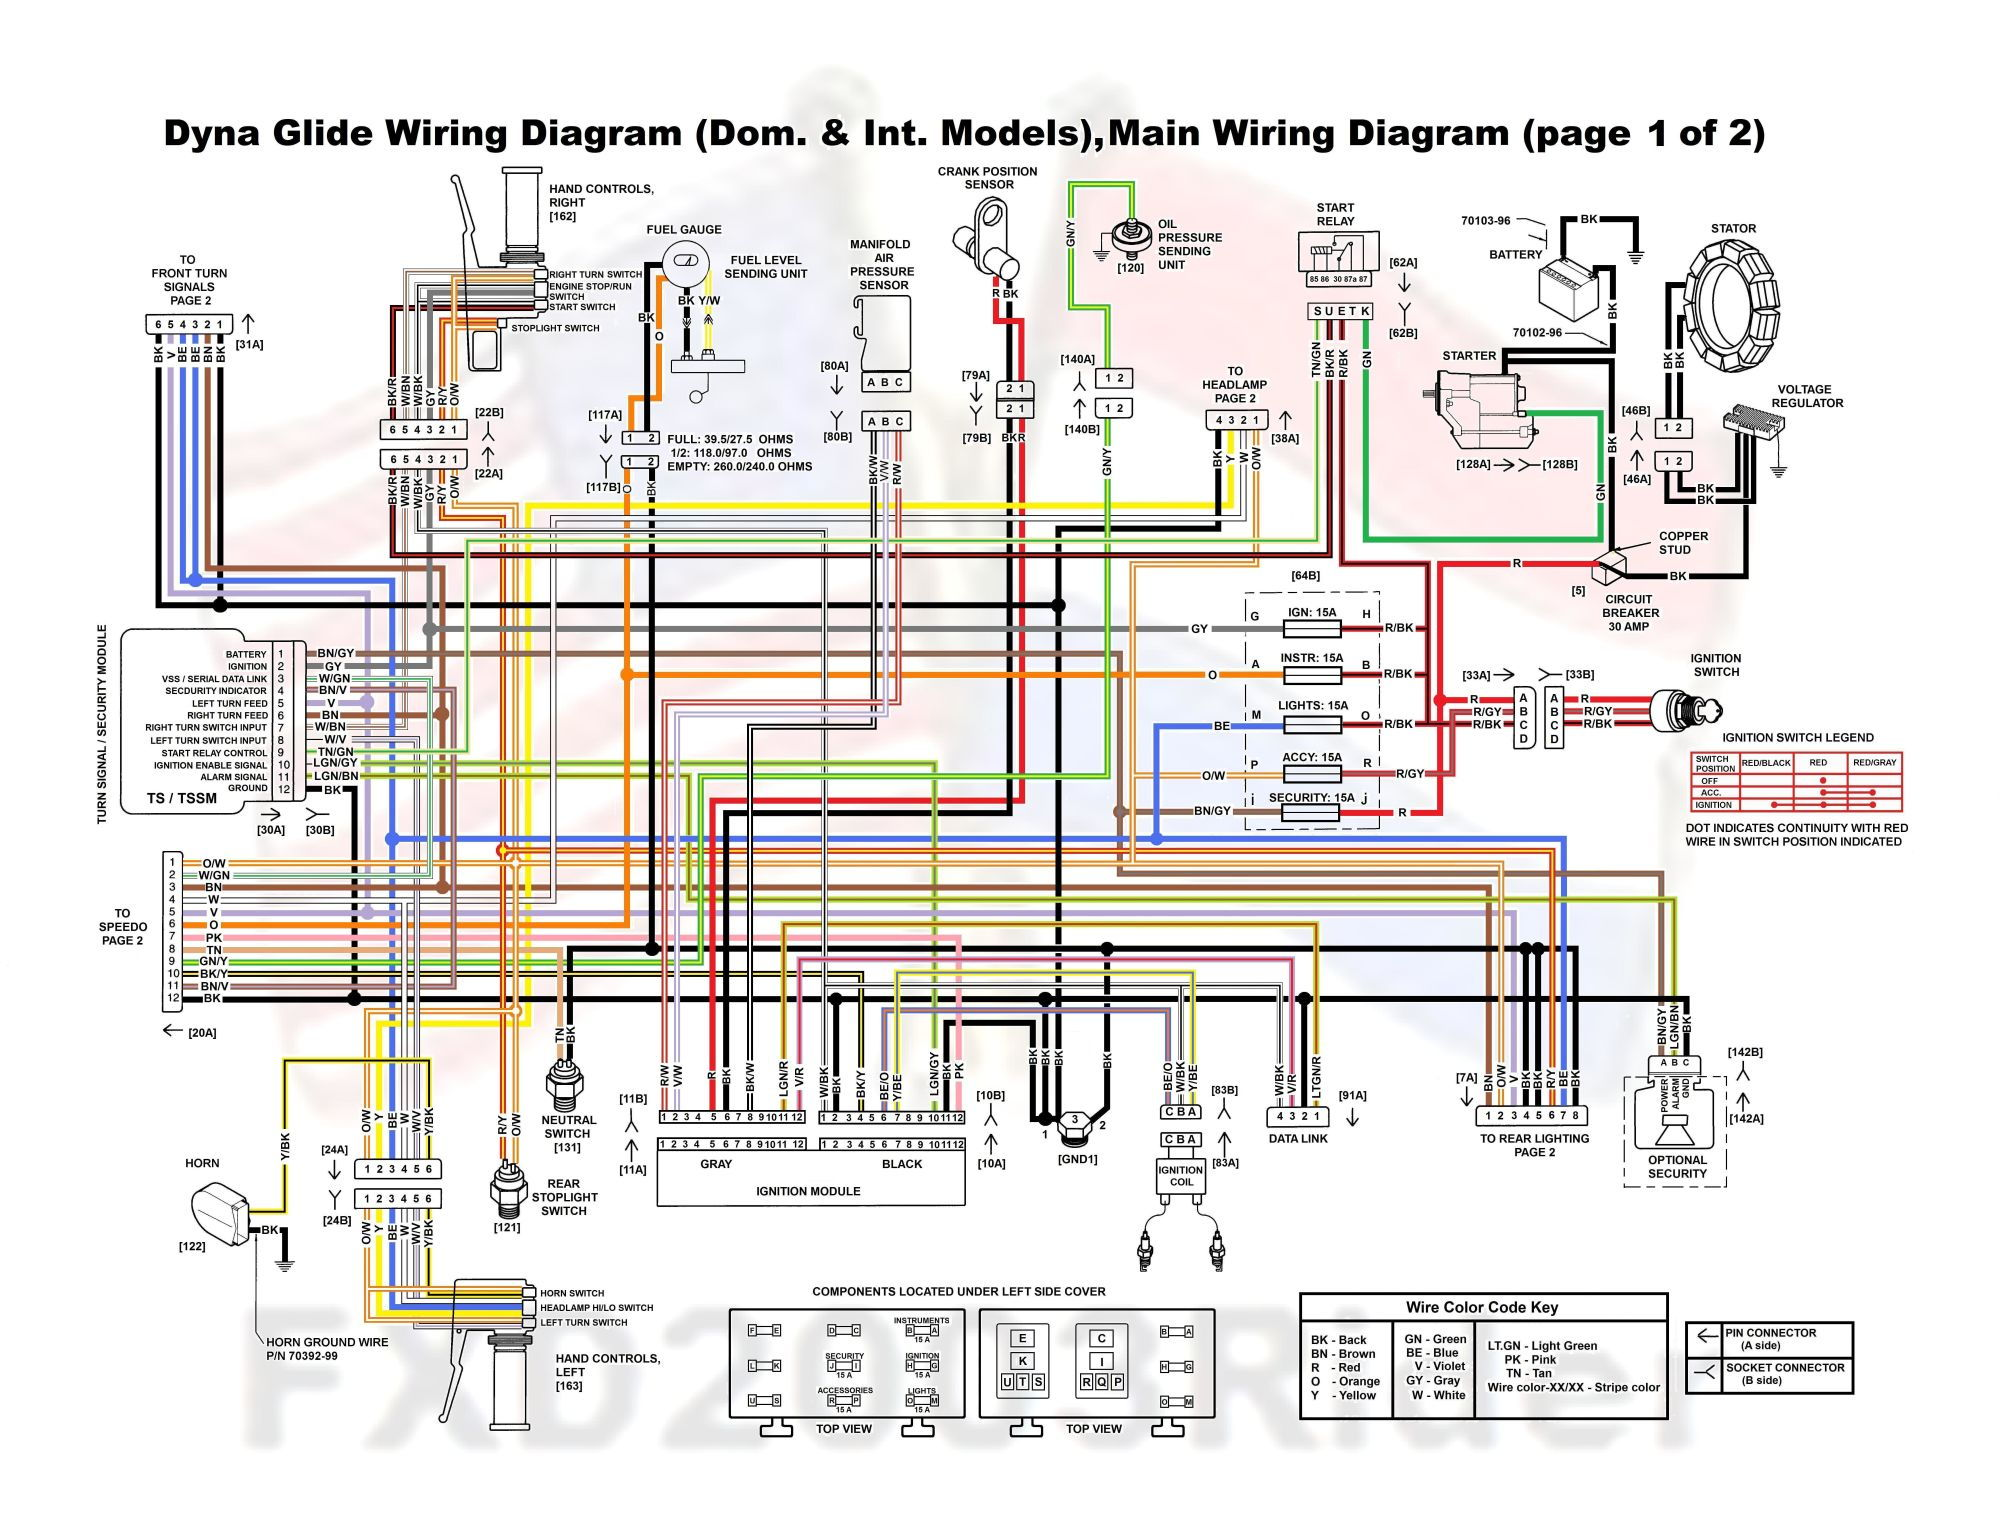 1998 Dyna Wiring Diagram - Wiring Diagrams Harley Davidson Electronic Ignition Wiring Diagram on ford electronic ignition wiring diagram, chrysler electronic ignition wiring diagram, dodge electronic ignition wiring diagram, toyota electronic ignition wiring diagram,